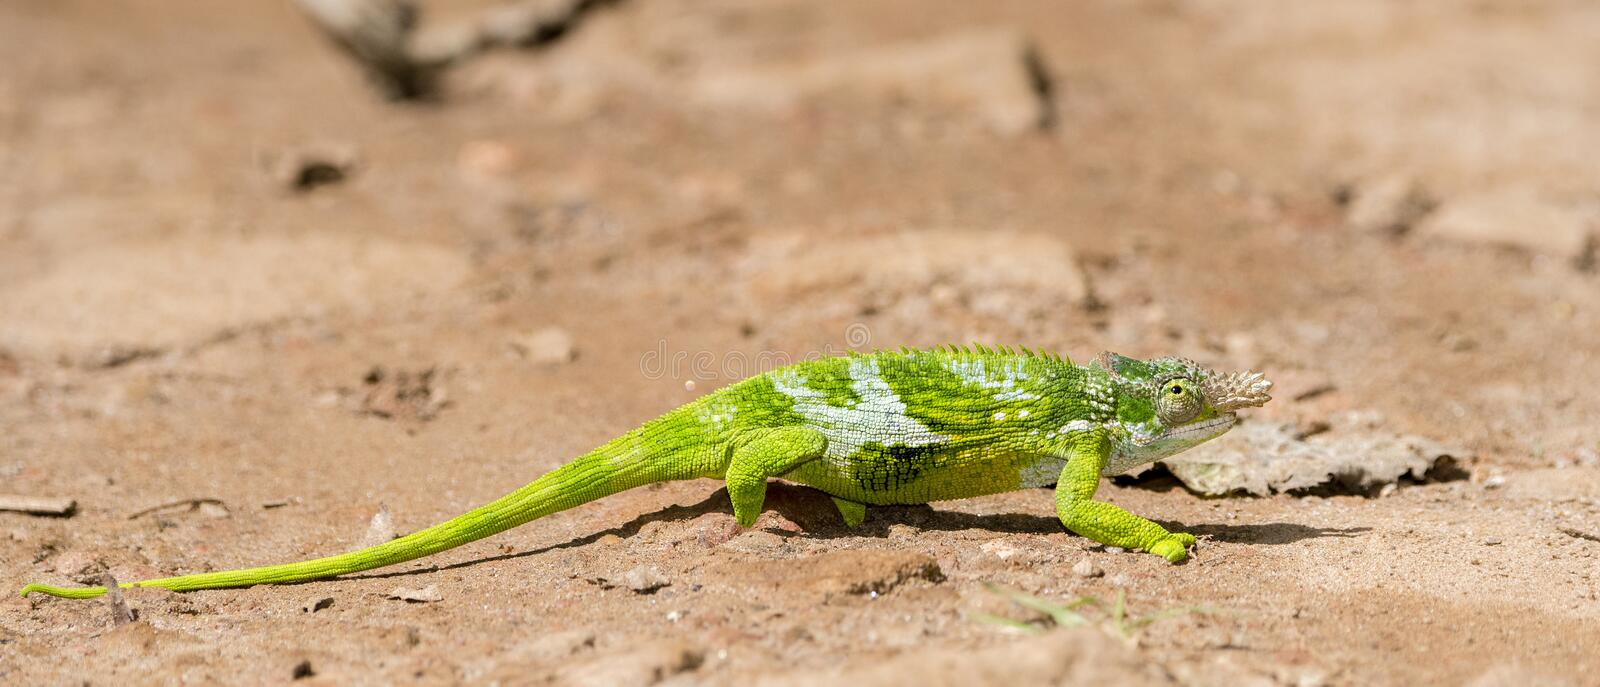 The Endemic & Threatened Usambara Two-horned Chameleon Kinyongia multituberculata in Tanzania royalty free stock images